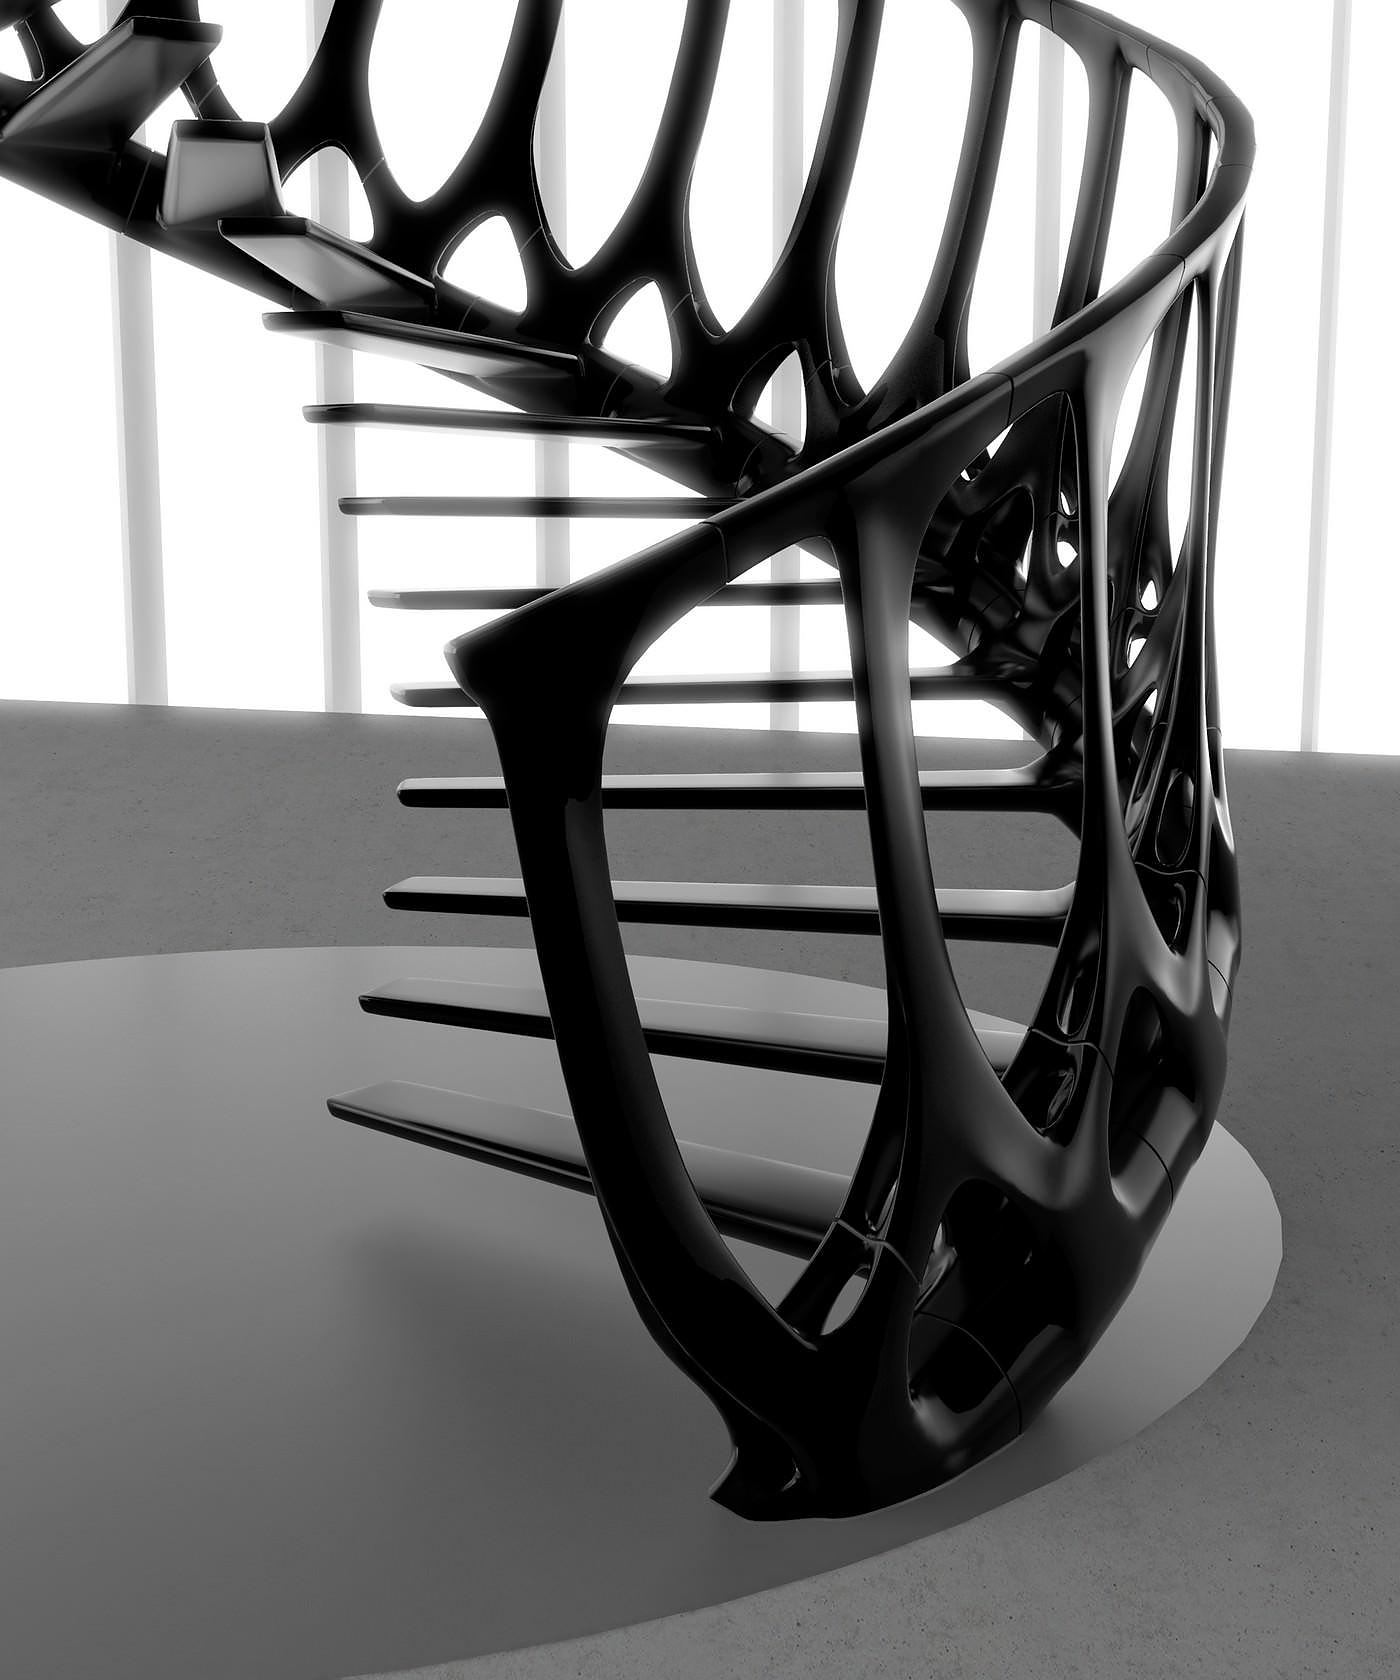 Vertebrae Staircase by Andrew McConnell.